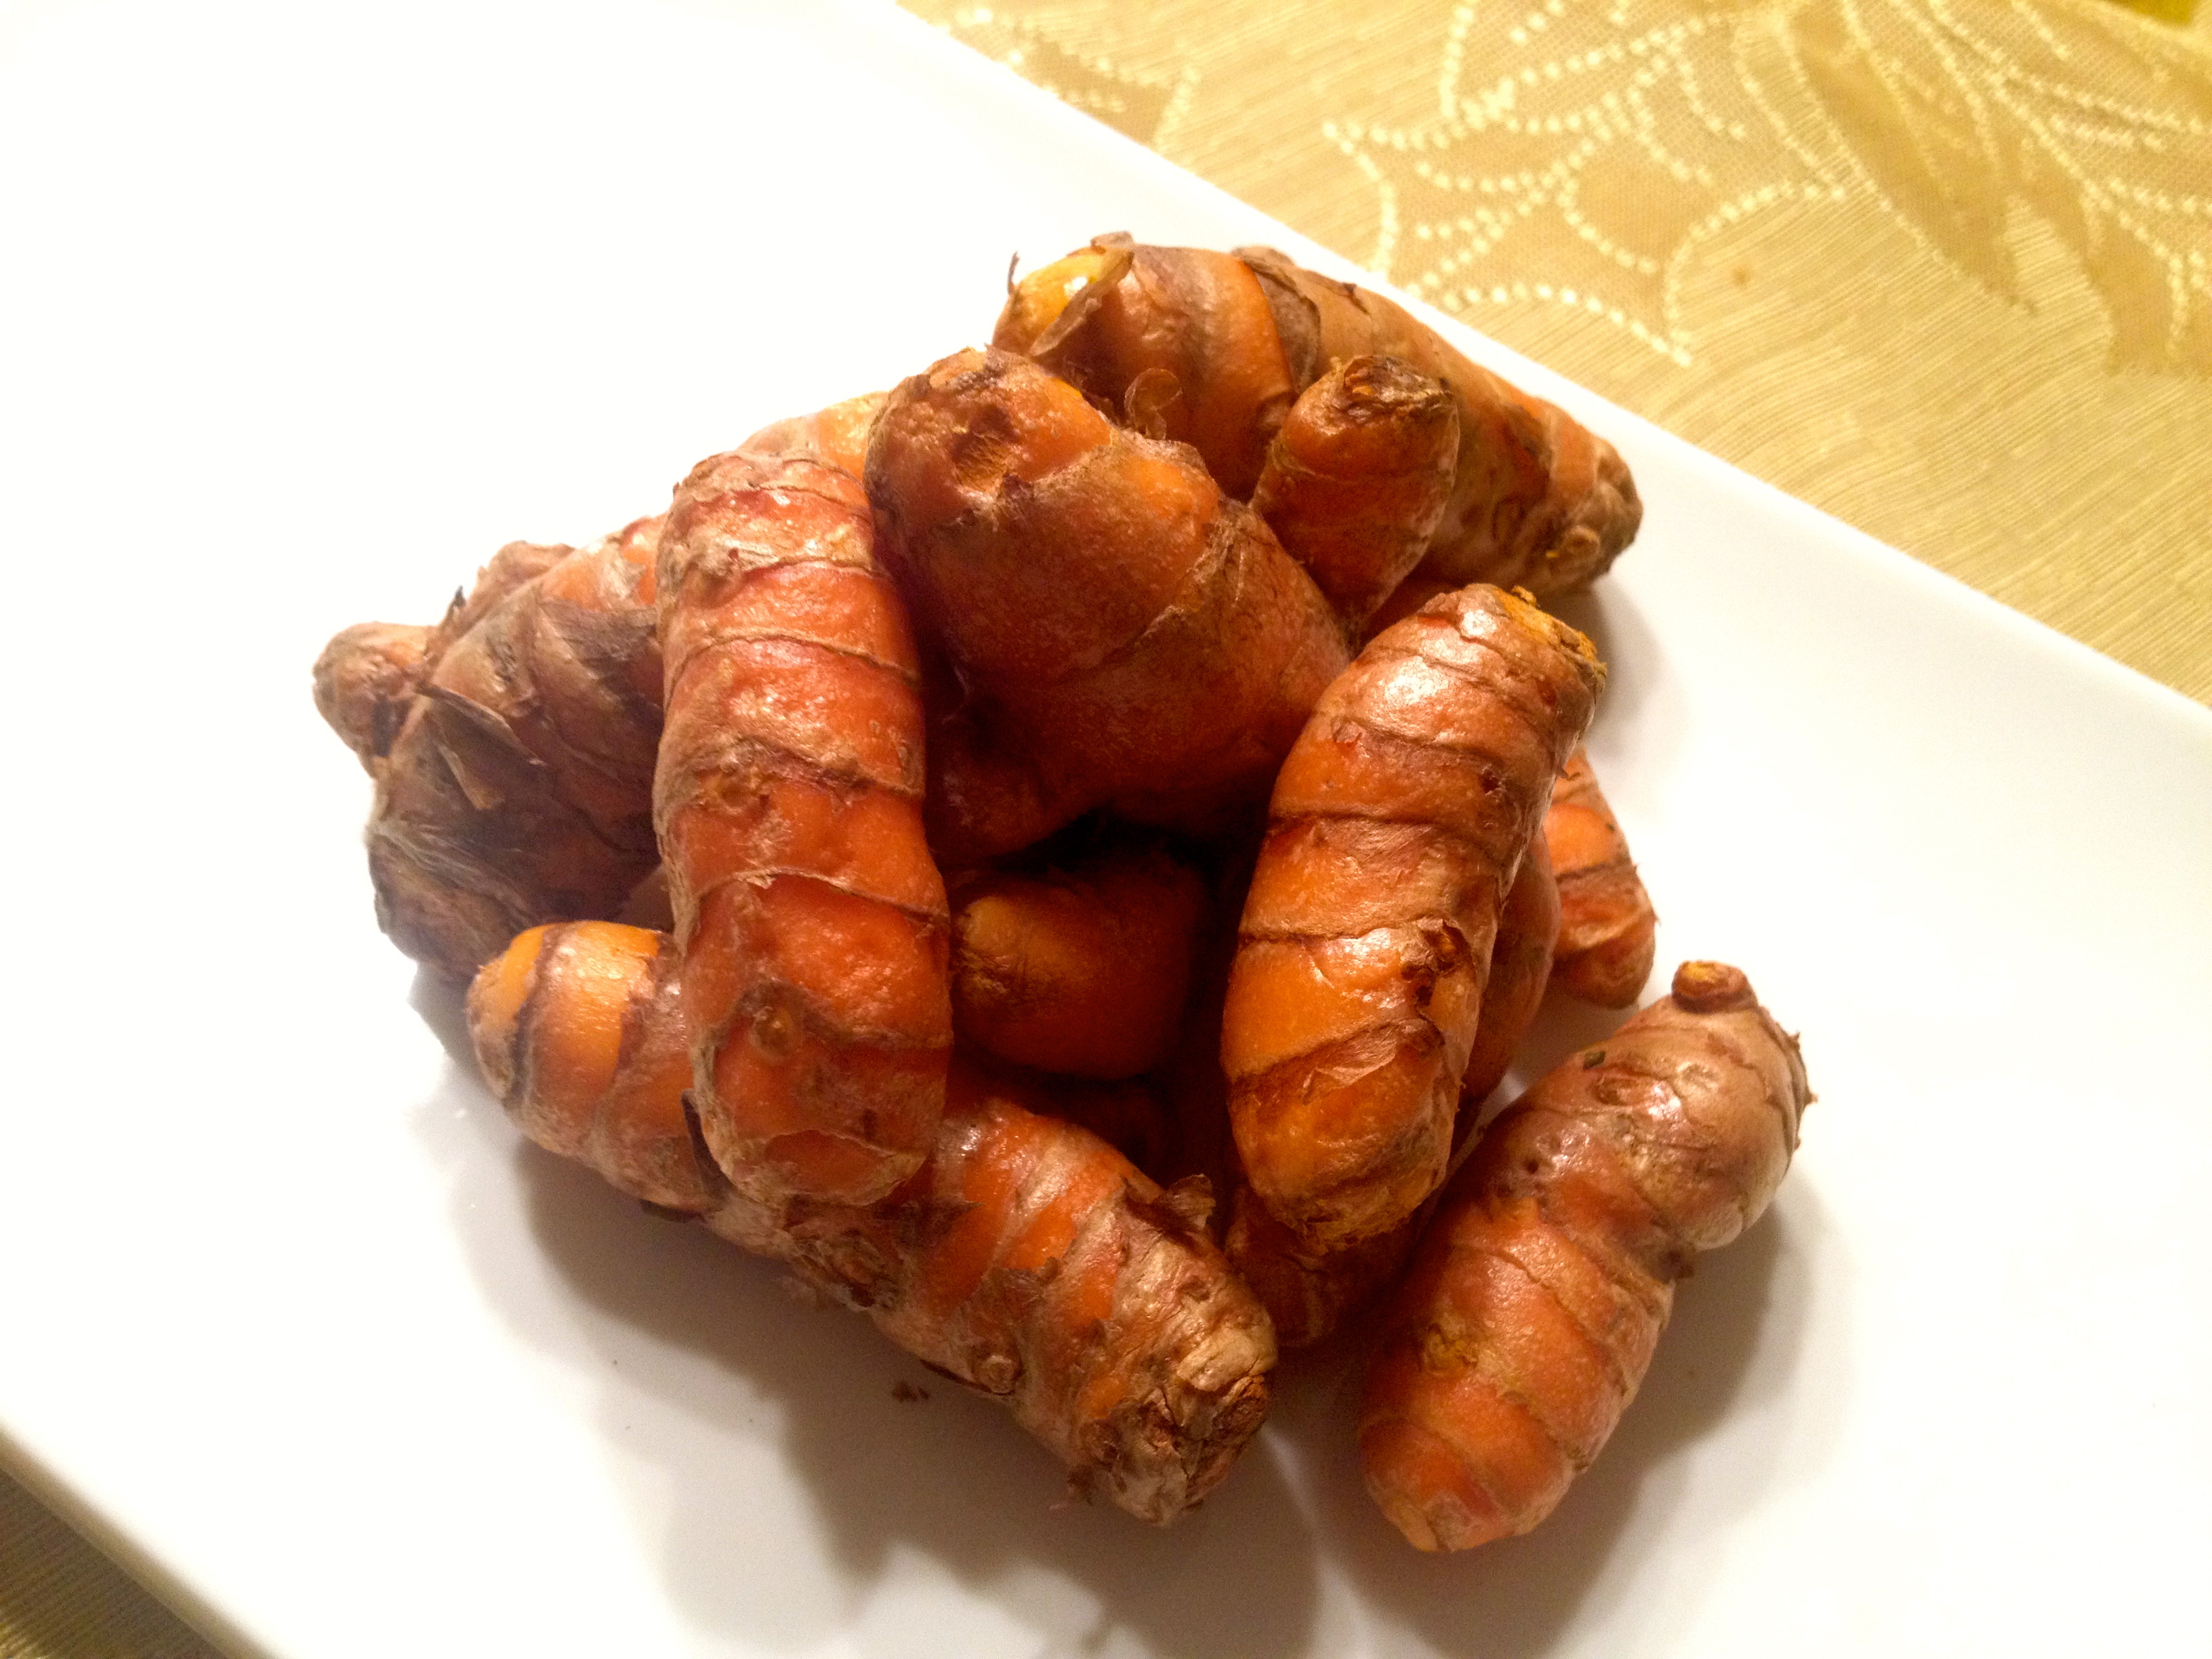 Raw Turmeric - member of the Rhizome Family